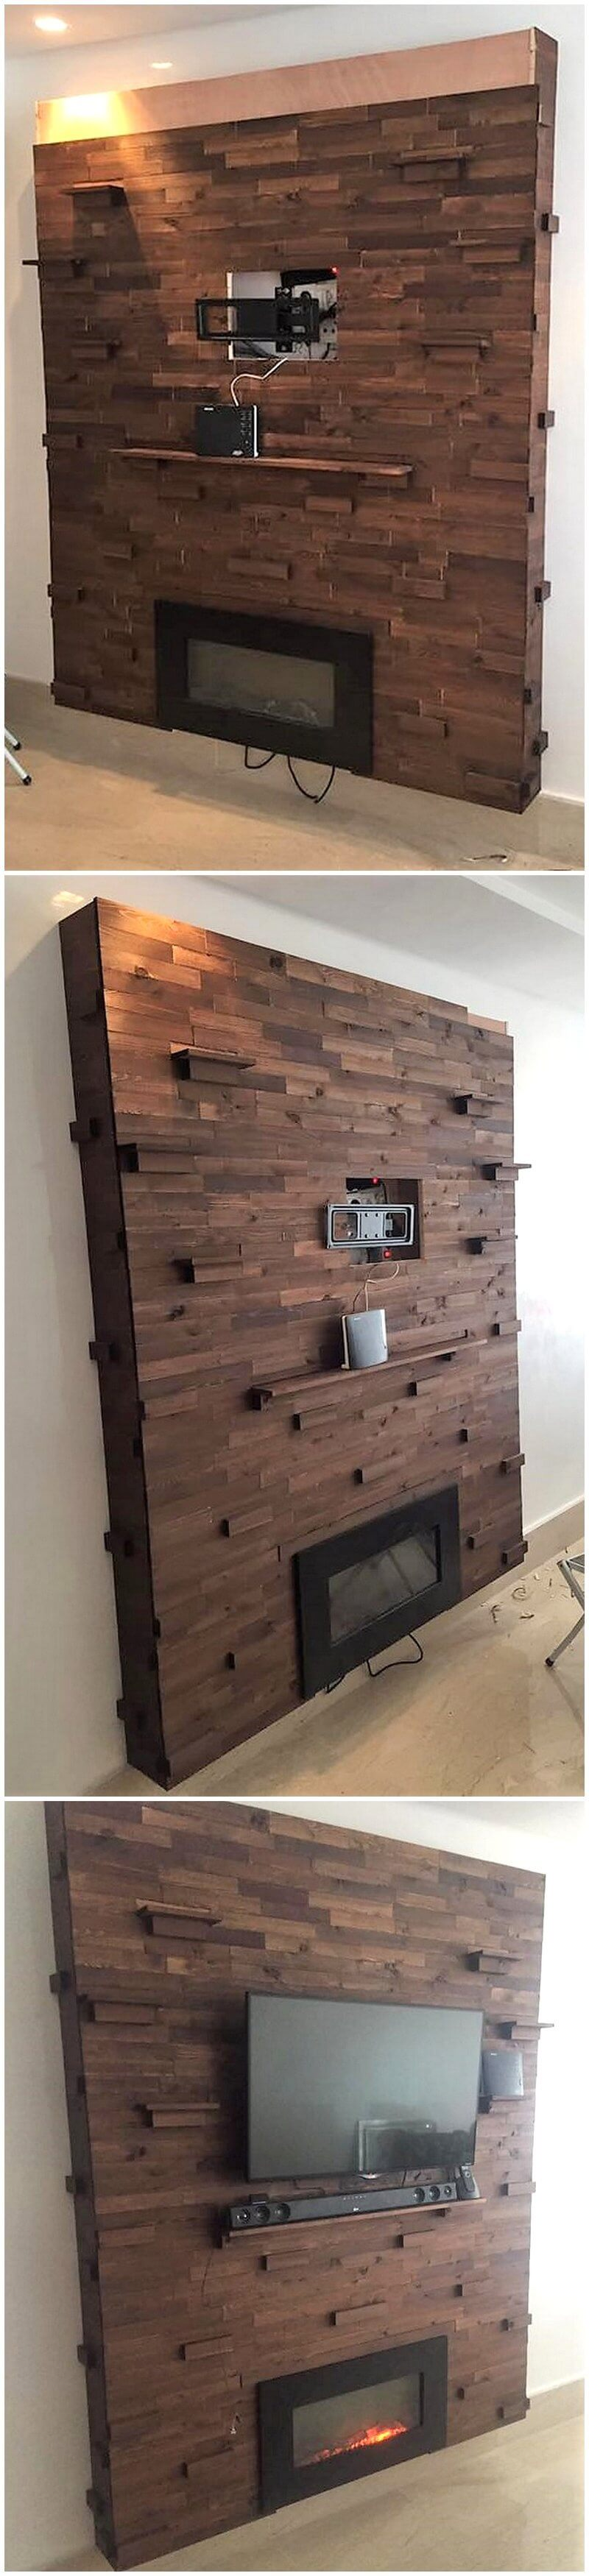 pallet wall art for firebit and lcd